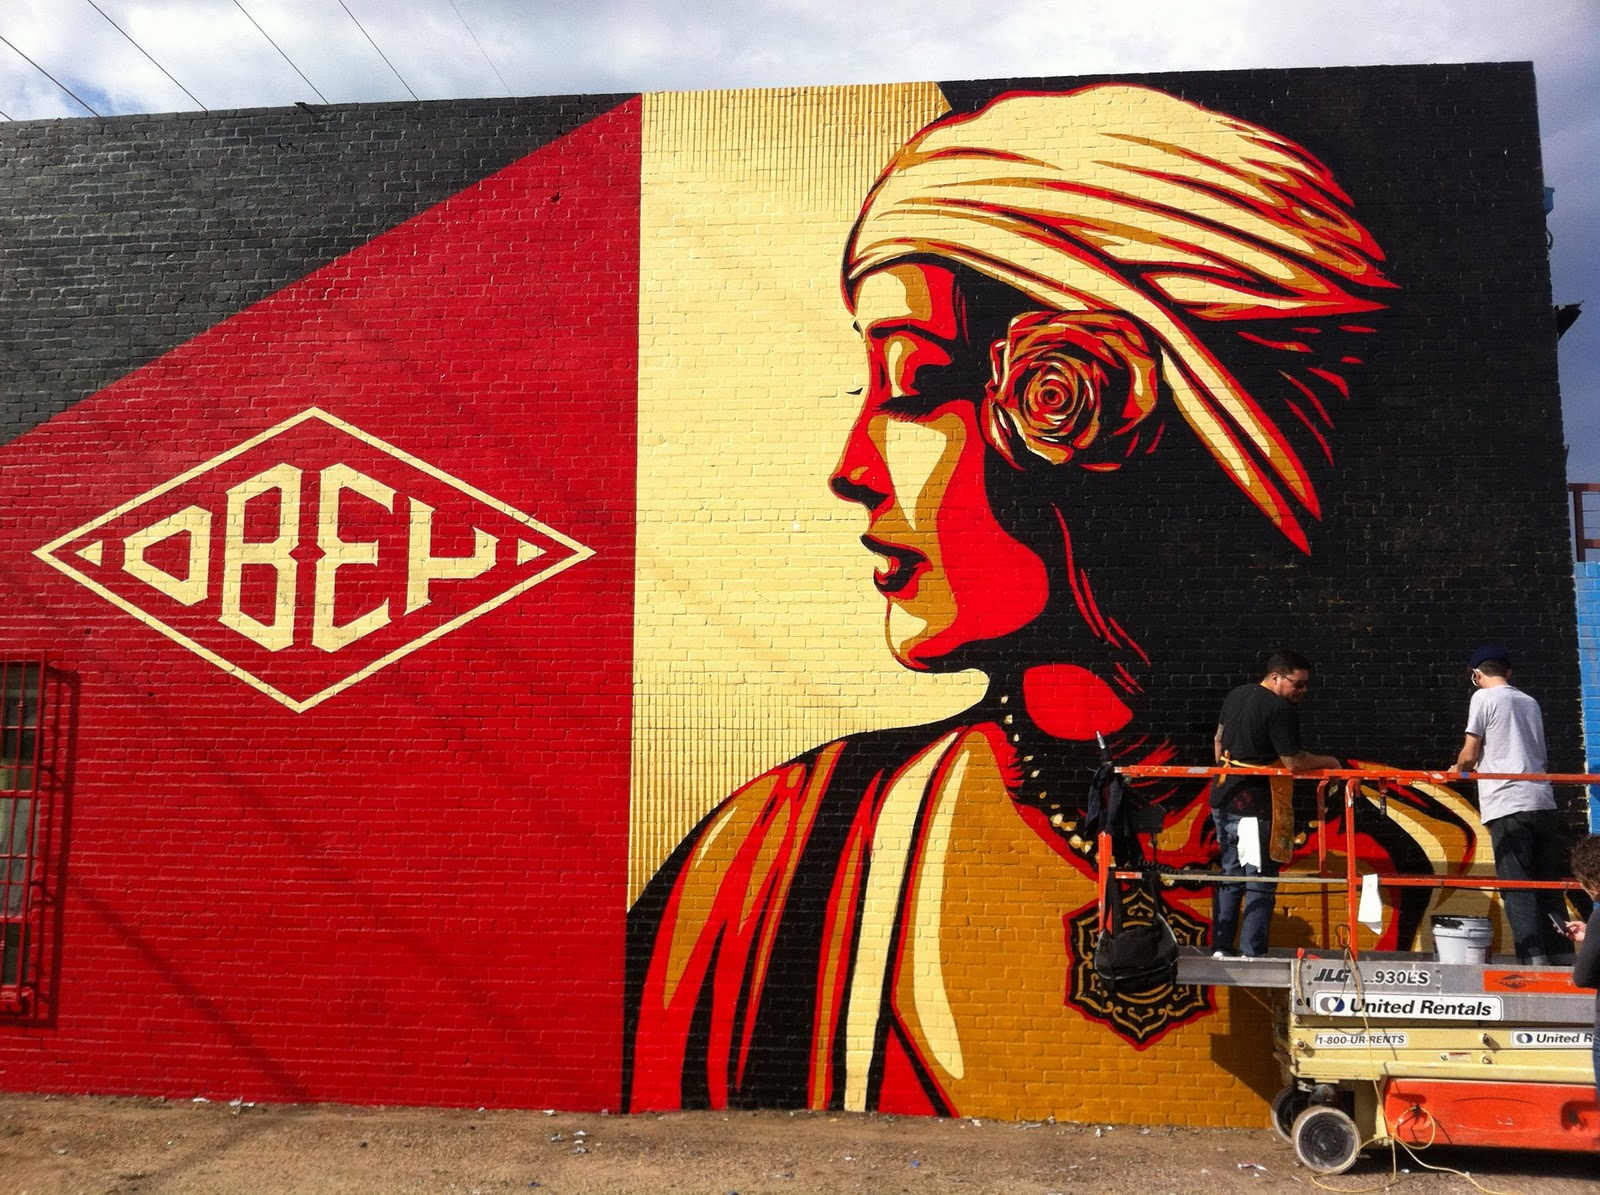 Shepard fairey rise above harmony new murals in for Dallas mural artists